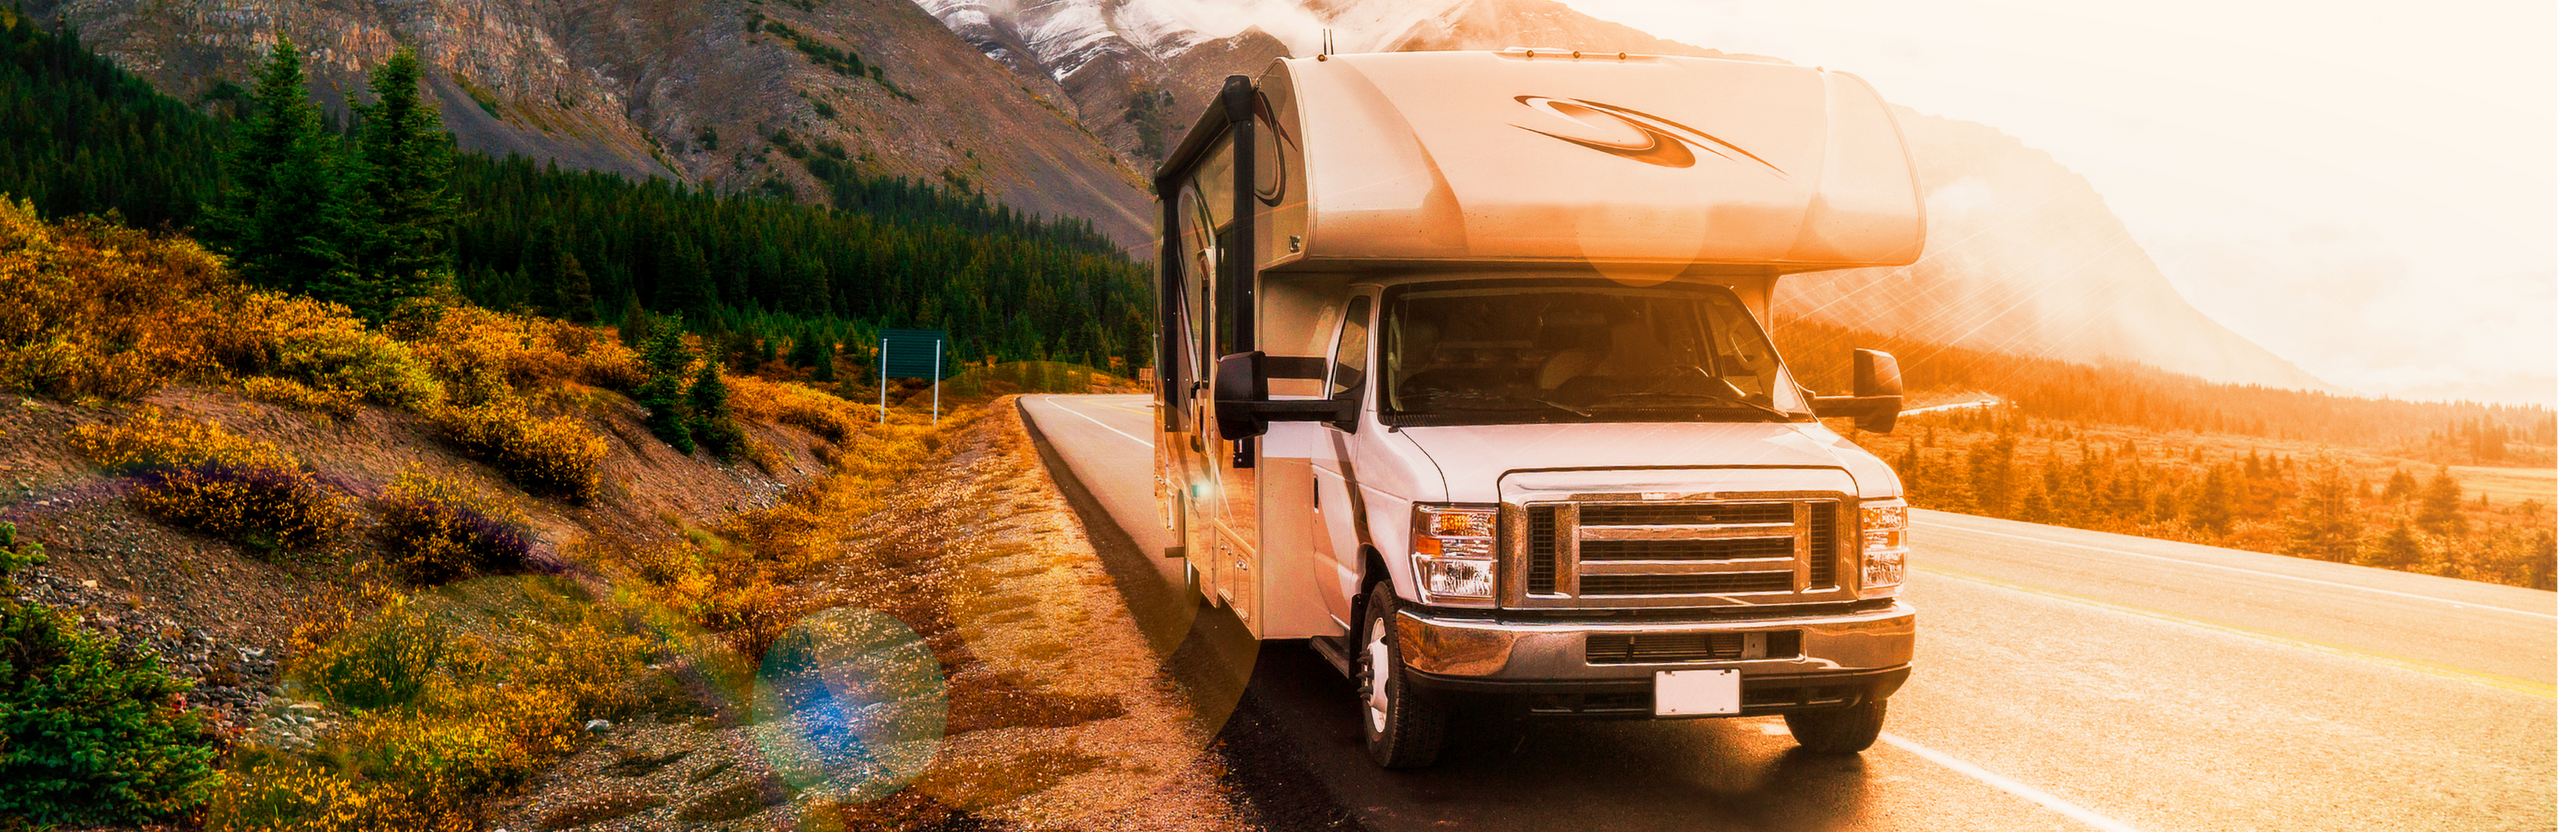 Picture of RV on a sunset road and boreal forest landscape